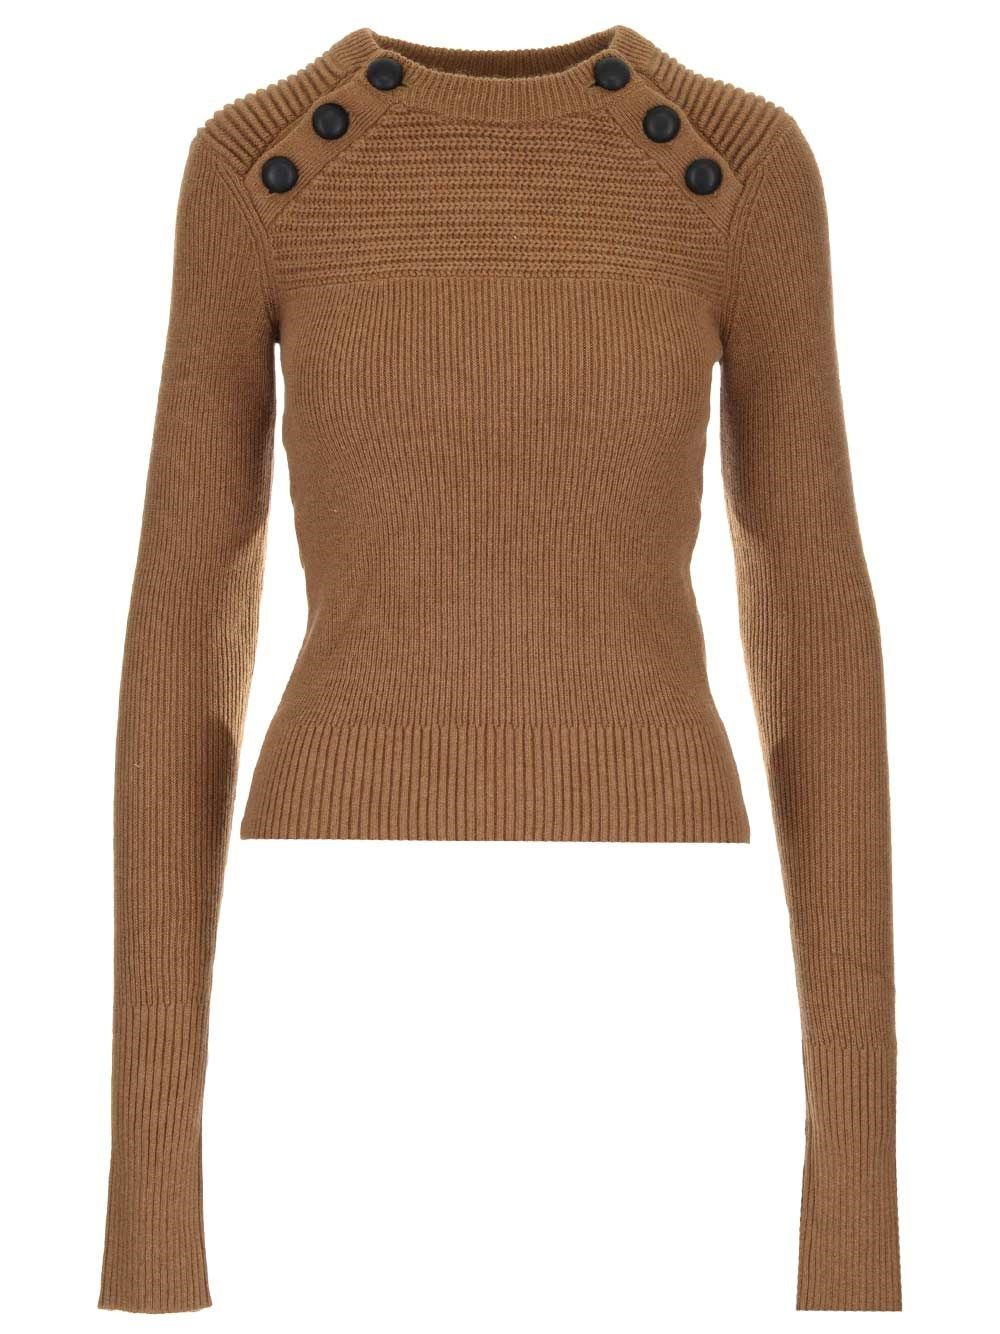 ETOILE ISABEL MARANT ISABEL MARANT ÉTOILE WOMEN'S BROWN COTTON SWEATER